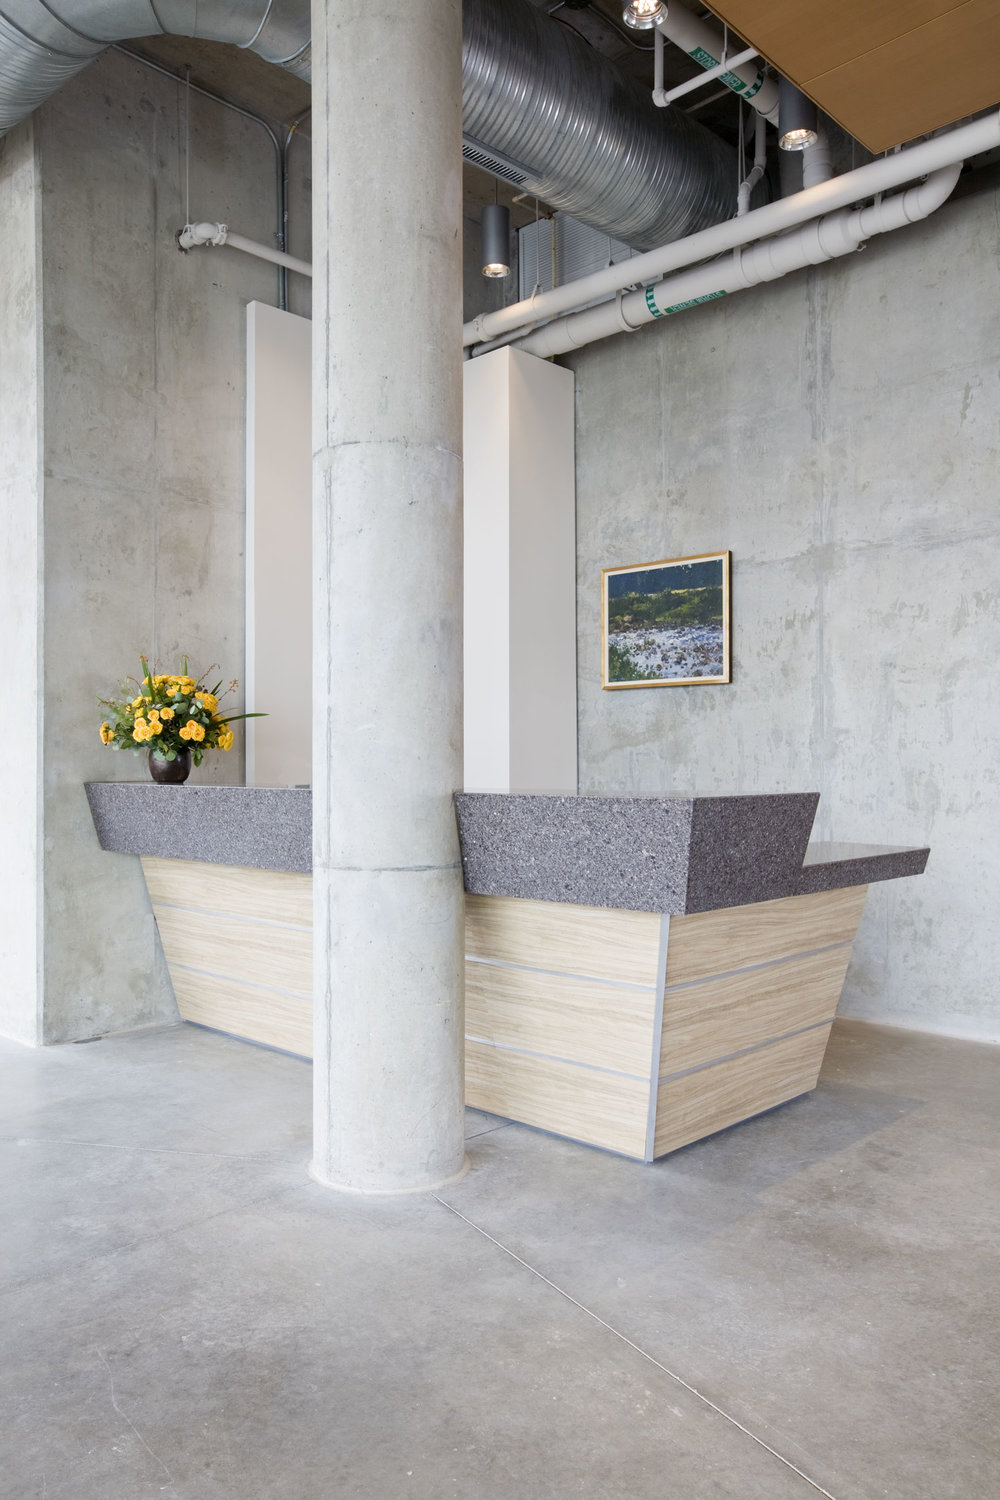 "This beautiful and energetic reception desk is made of concrete and marble and is a masterpiece of complicated lines, angles and cuts. The desk ""explodes"" from its space and nearly bisects the round column. The layers of angles that form the transaction top give way to similar angles in the face portion, now pulling away from the round column."